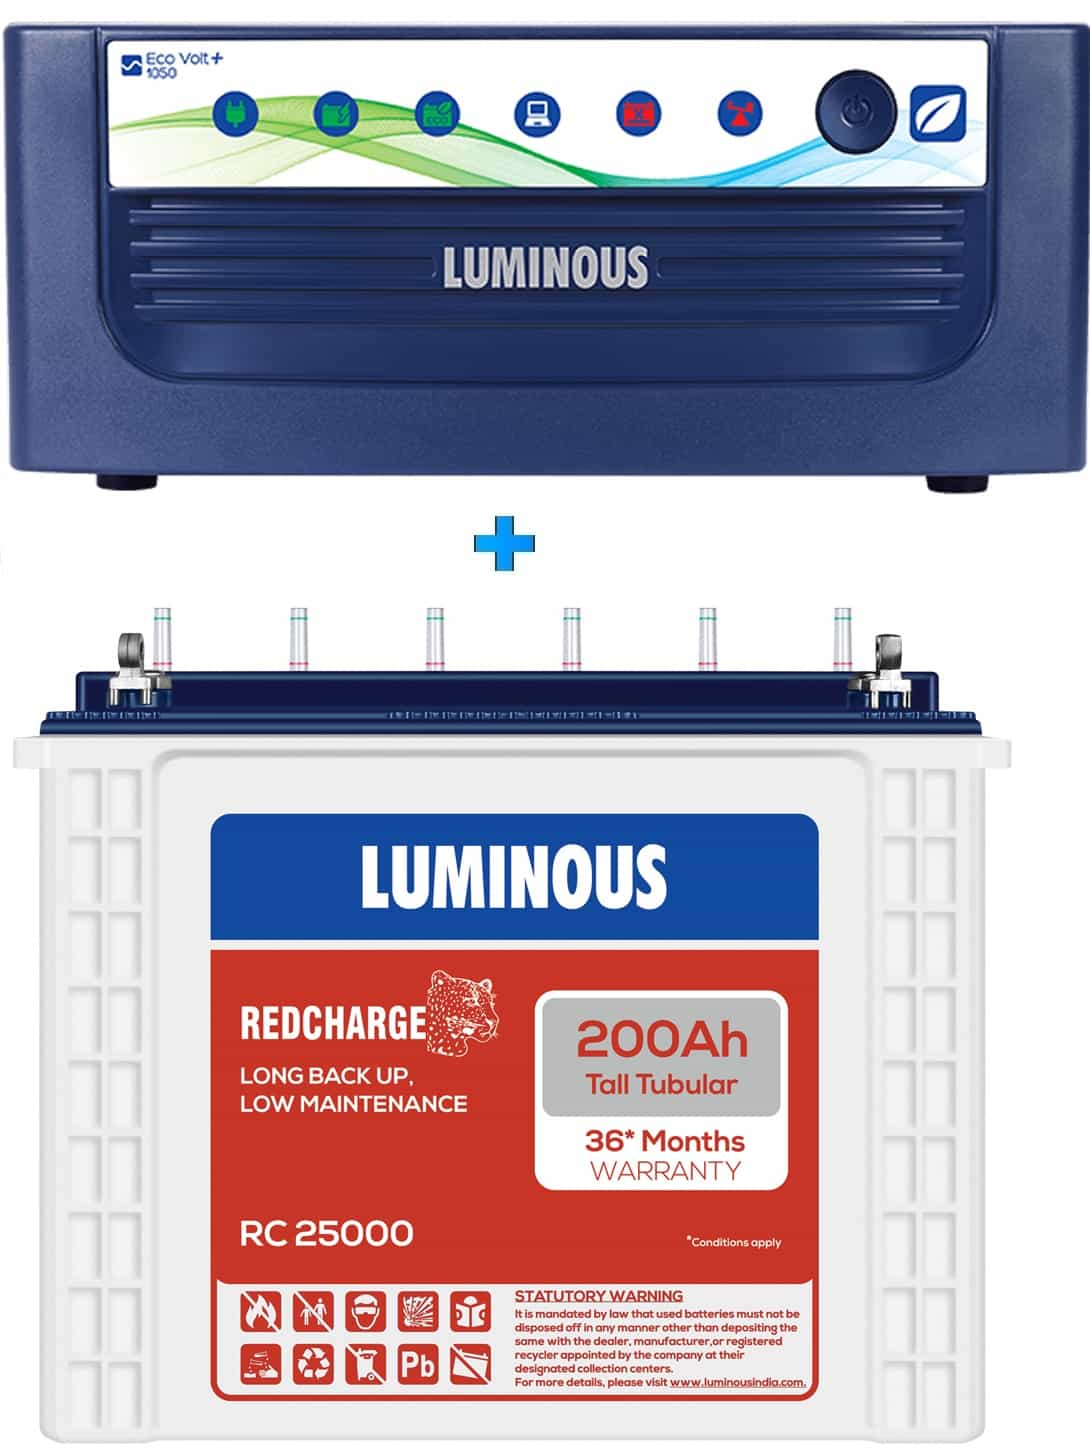 LUMINOUS 1050+ ECO VOLT + RC25000 200AH